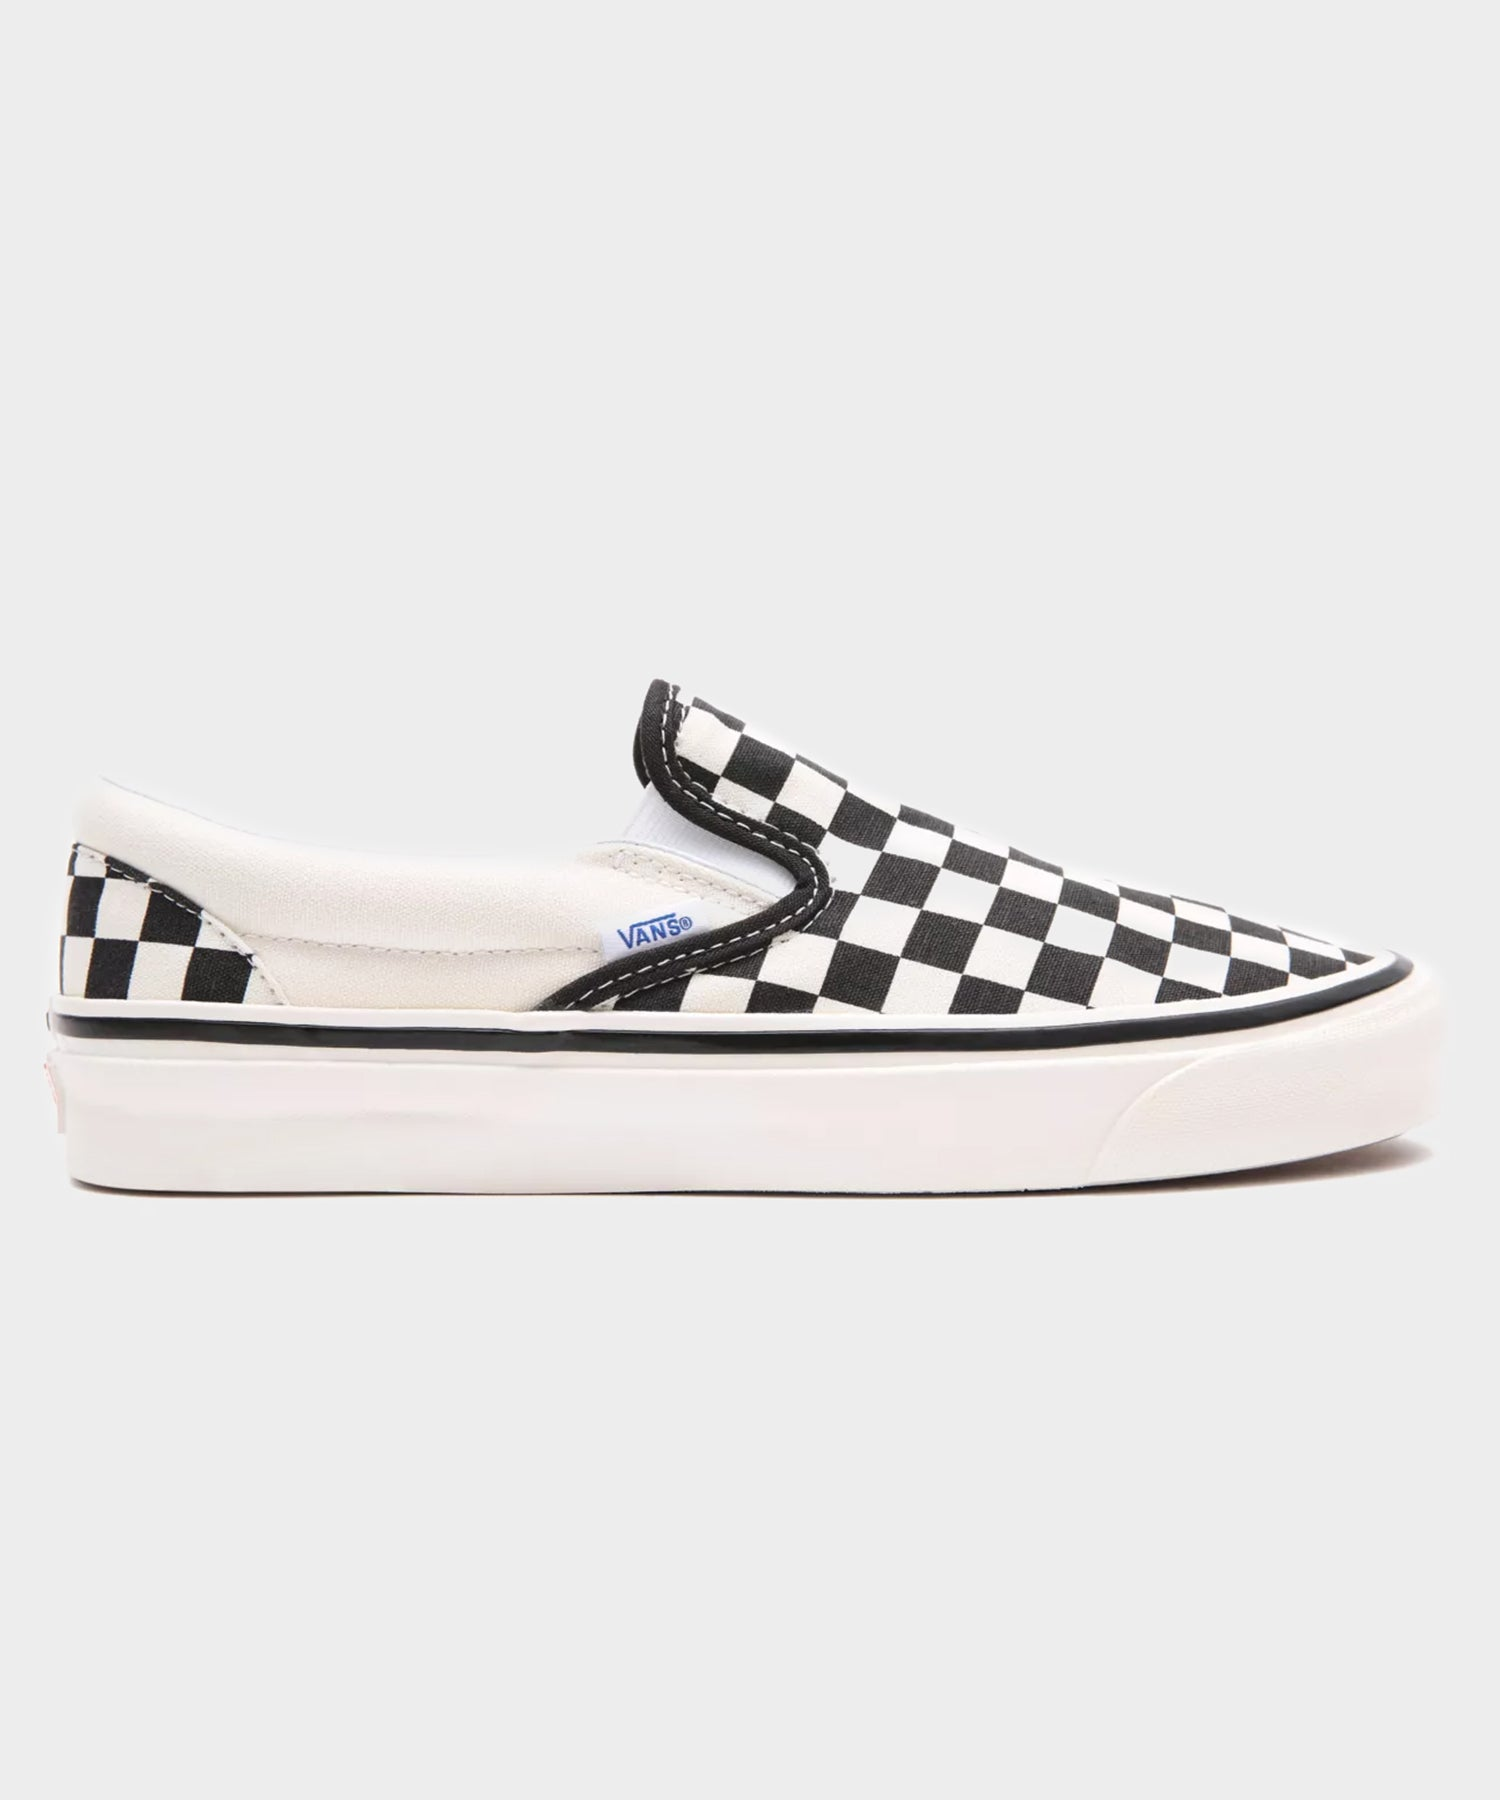 Vans Anaheim Factory Classic Slip On in Checkerboard